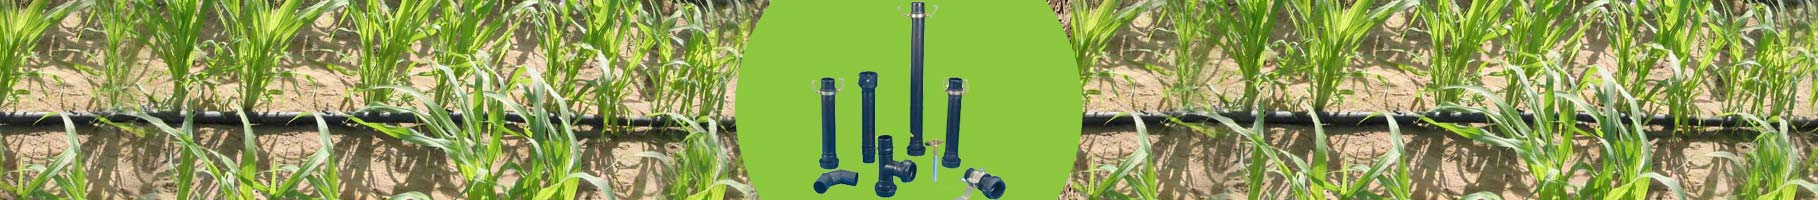 Sprinkler Pipes  | Khedut Irrigation, Leading manufacturer & Exporter of Drip Irrigation System, Landscapping Irringation Systems, Manufacturer & Exports of Drip Irrigation System, Emitting Pipes (Inline Lateral), Online Lateral, Drippers, Screen Filter, Disc Filter, Hydrocyclone Filter, Sand/Gravel Filter, Venturi, Fertilizer Tank, Drip Accessories, Sprinkler System, Landscapping Irrigation, Easy Tape, HDPE Pipes, Other Irrigation Products, Commercial, Agriculture & Industrial Landscape, Gold Irrigation Systems, irrigation, sprinkler, system, rotor, rotary sprinklers, watering, commercial irrigation, drip irrigation, residential irrigation, turf, contractor, landscaping, lawn watering, lawn sprinklers, gardening, spray head, controllers, valves, Drip Accessories, Sprinkler Accessories, pipes, irrigation fittings, irrigation, pvc fitting, filters.